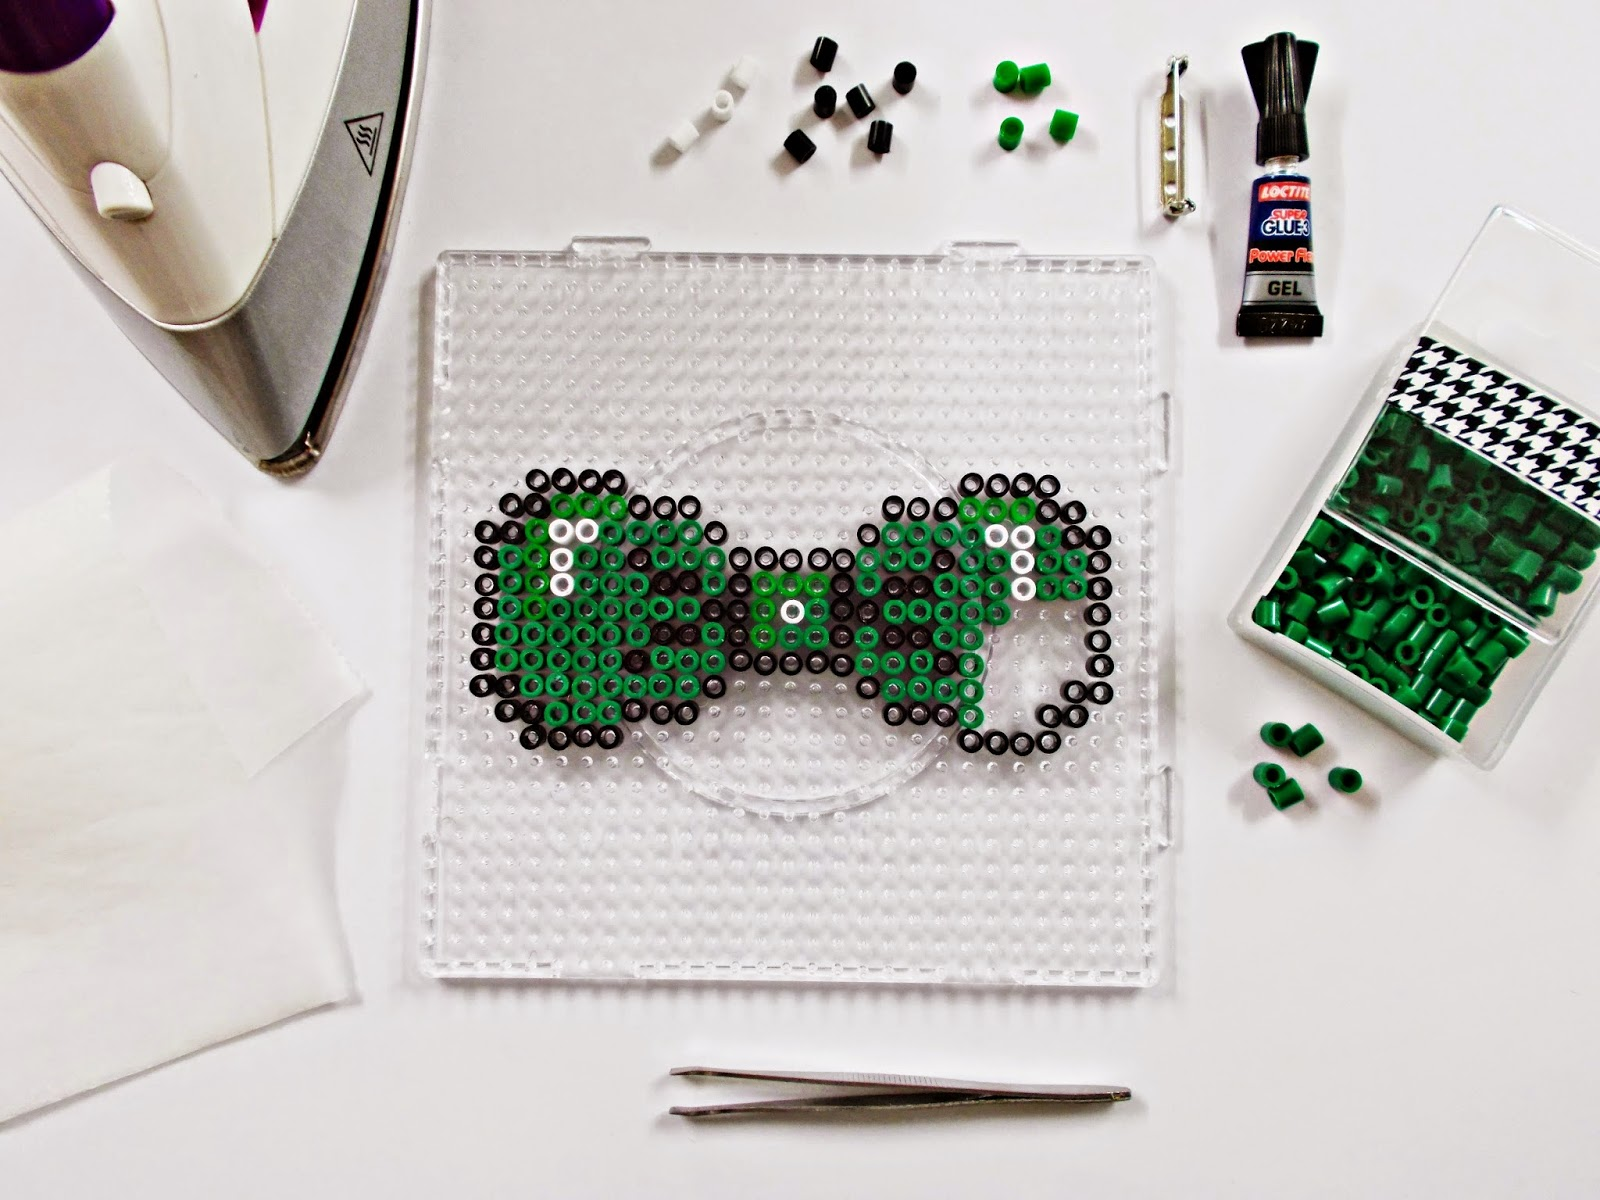 DIY-pajarita-tie bow-hama beads- DoItYourself-idea-moda-broche-2